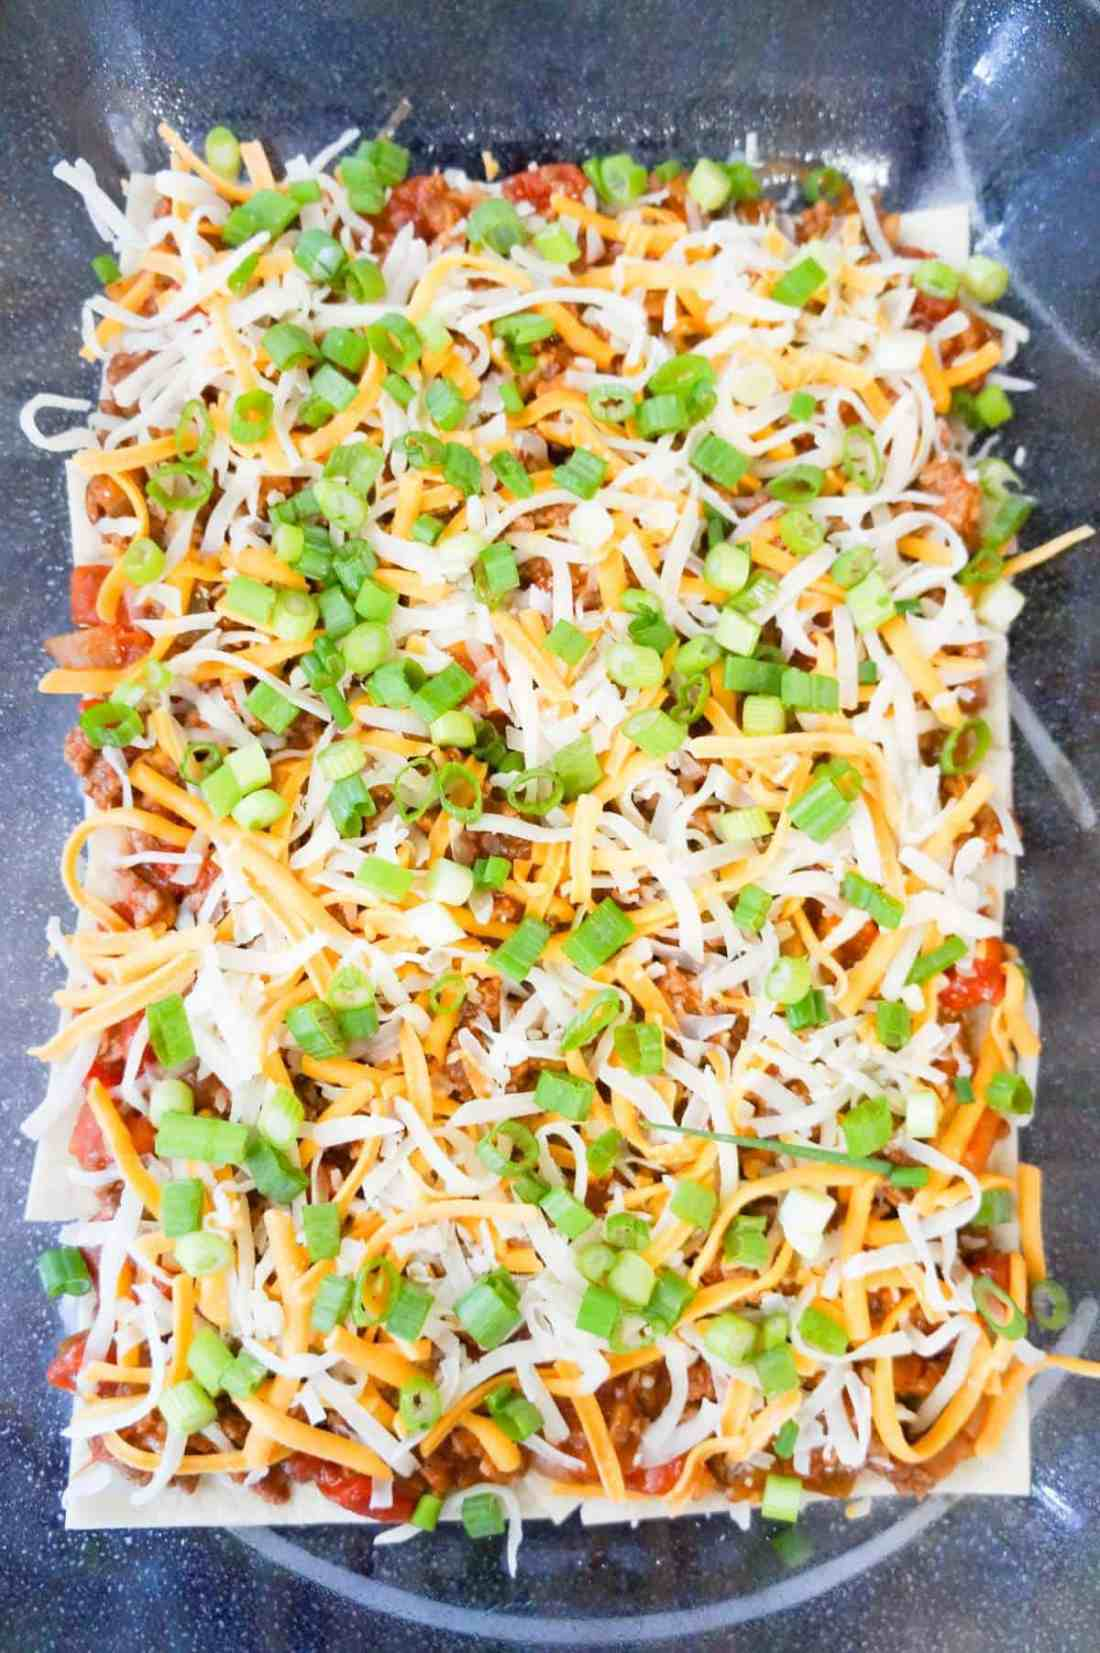 chopped green onions and shredded cheese on top of meat and tortillas in a baking dish